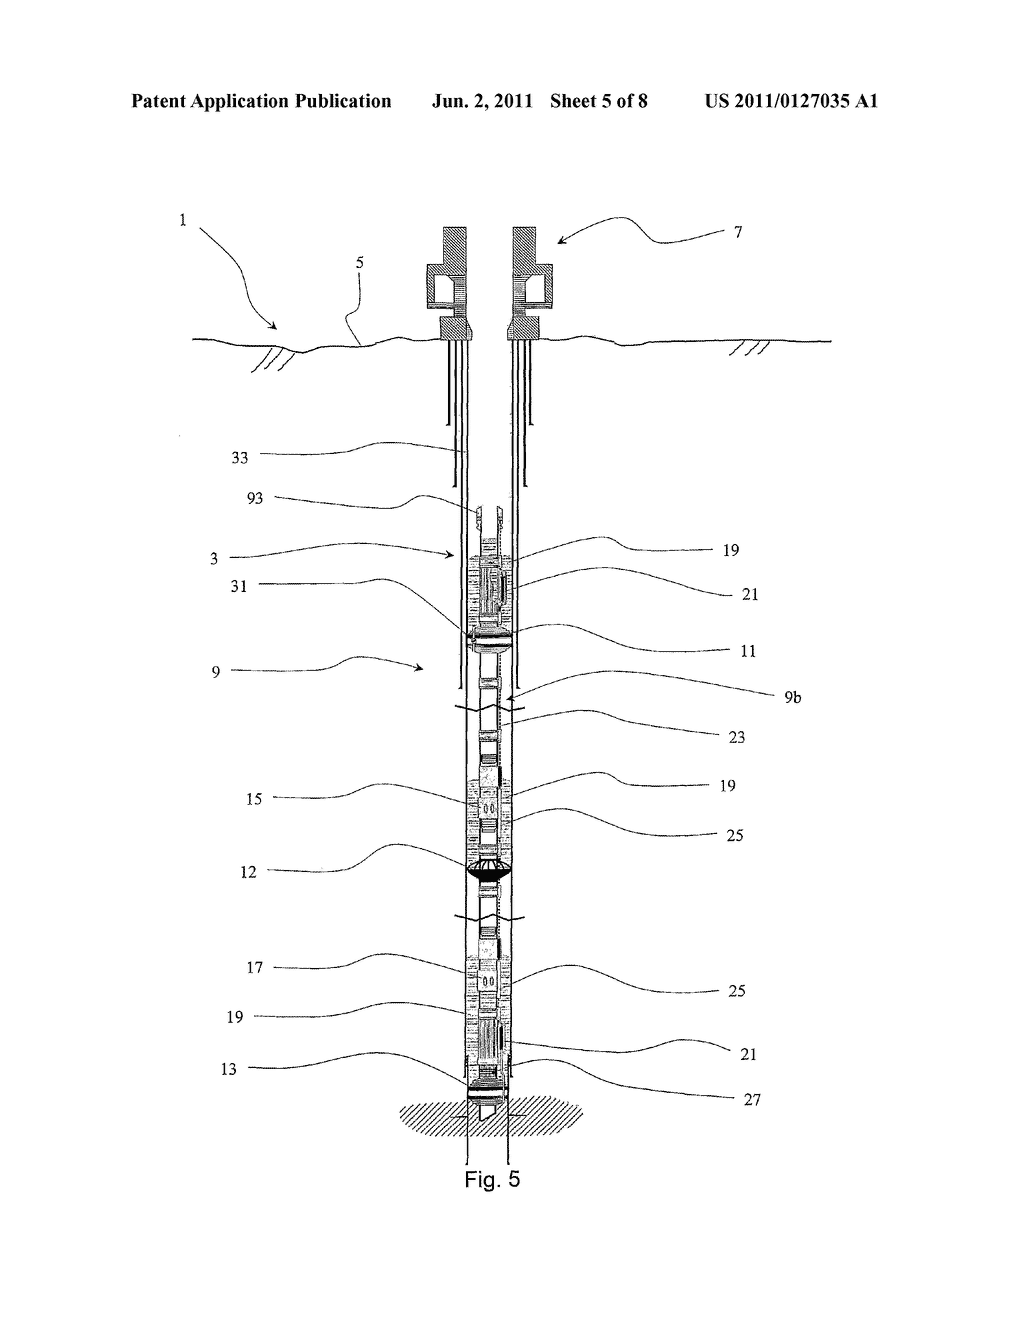 Petroleum Well Diagram Trusted Wiring Diagrams Process Flow Oil And Gas Production Method Of Abandoning A Schematic Image 06 Rh Patentsencyclopedia Com Drilling Extraction Block